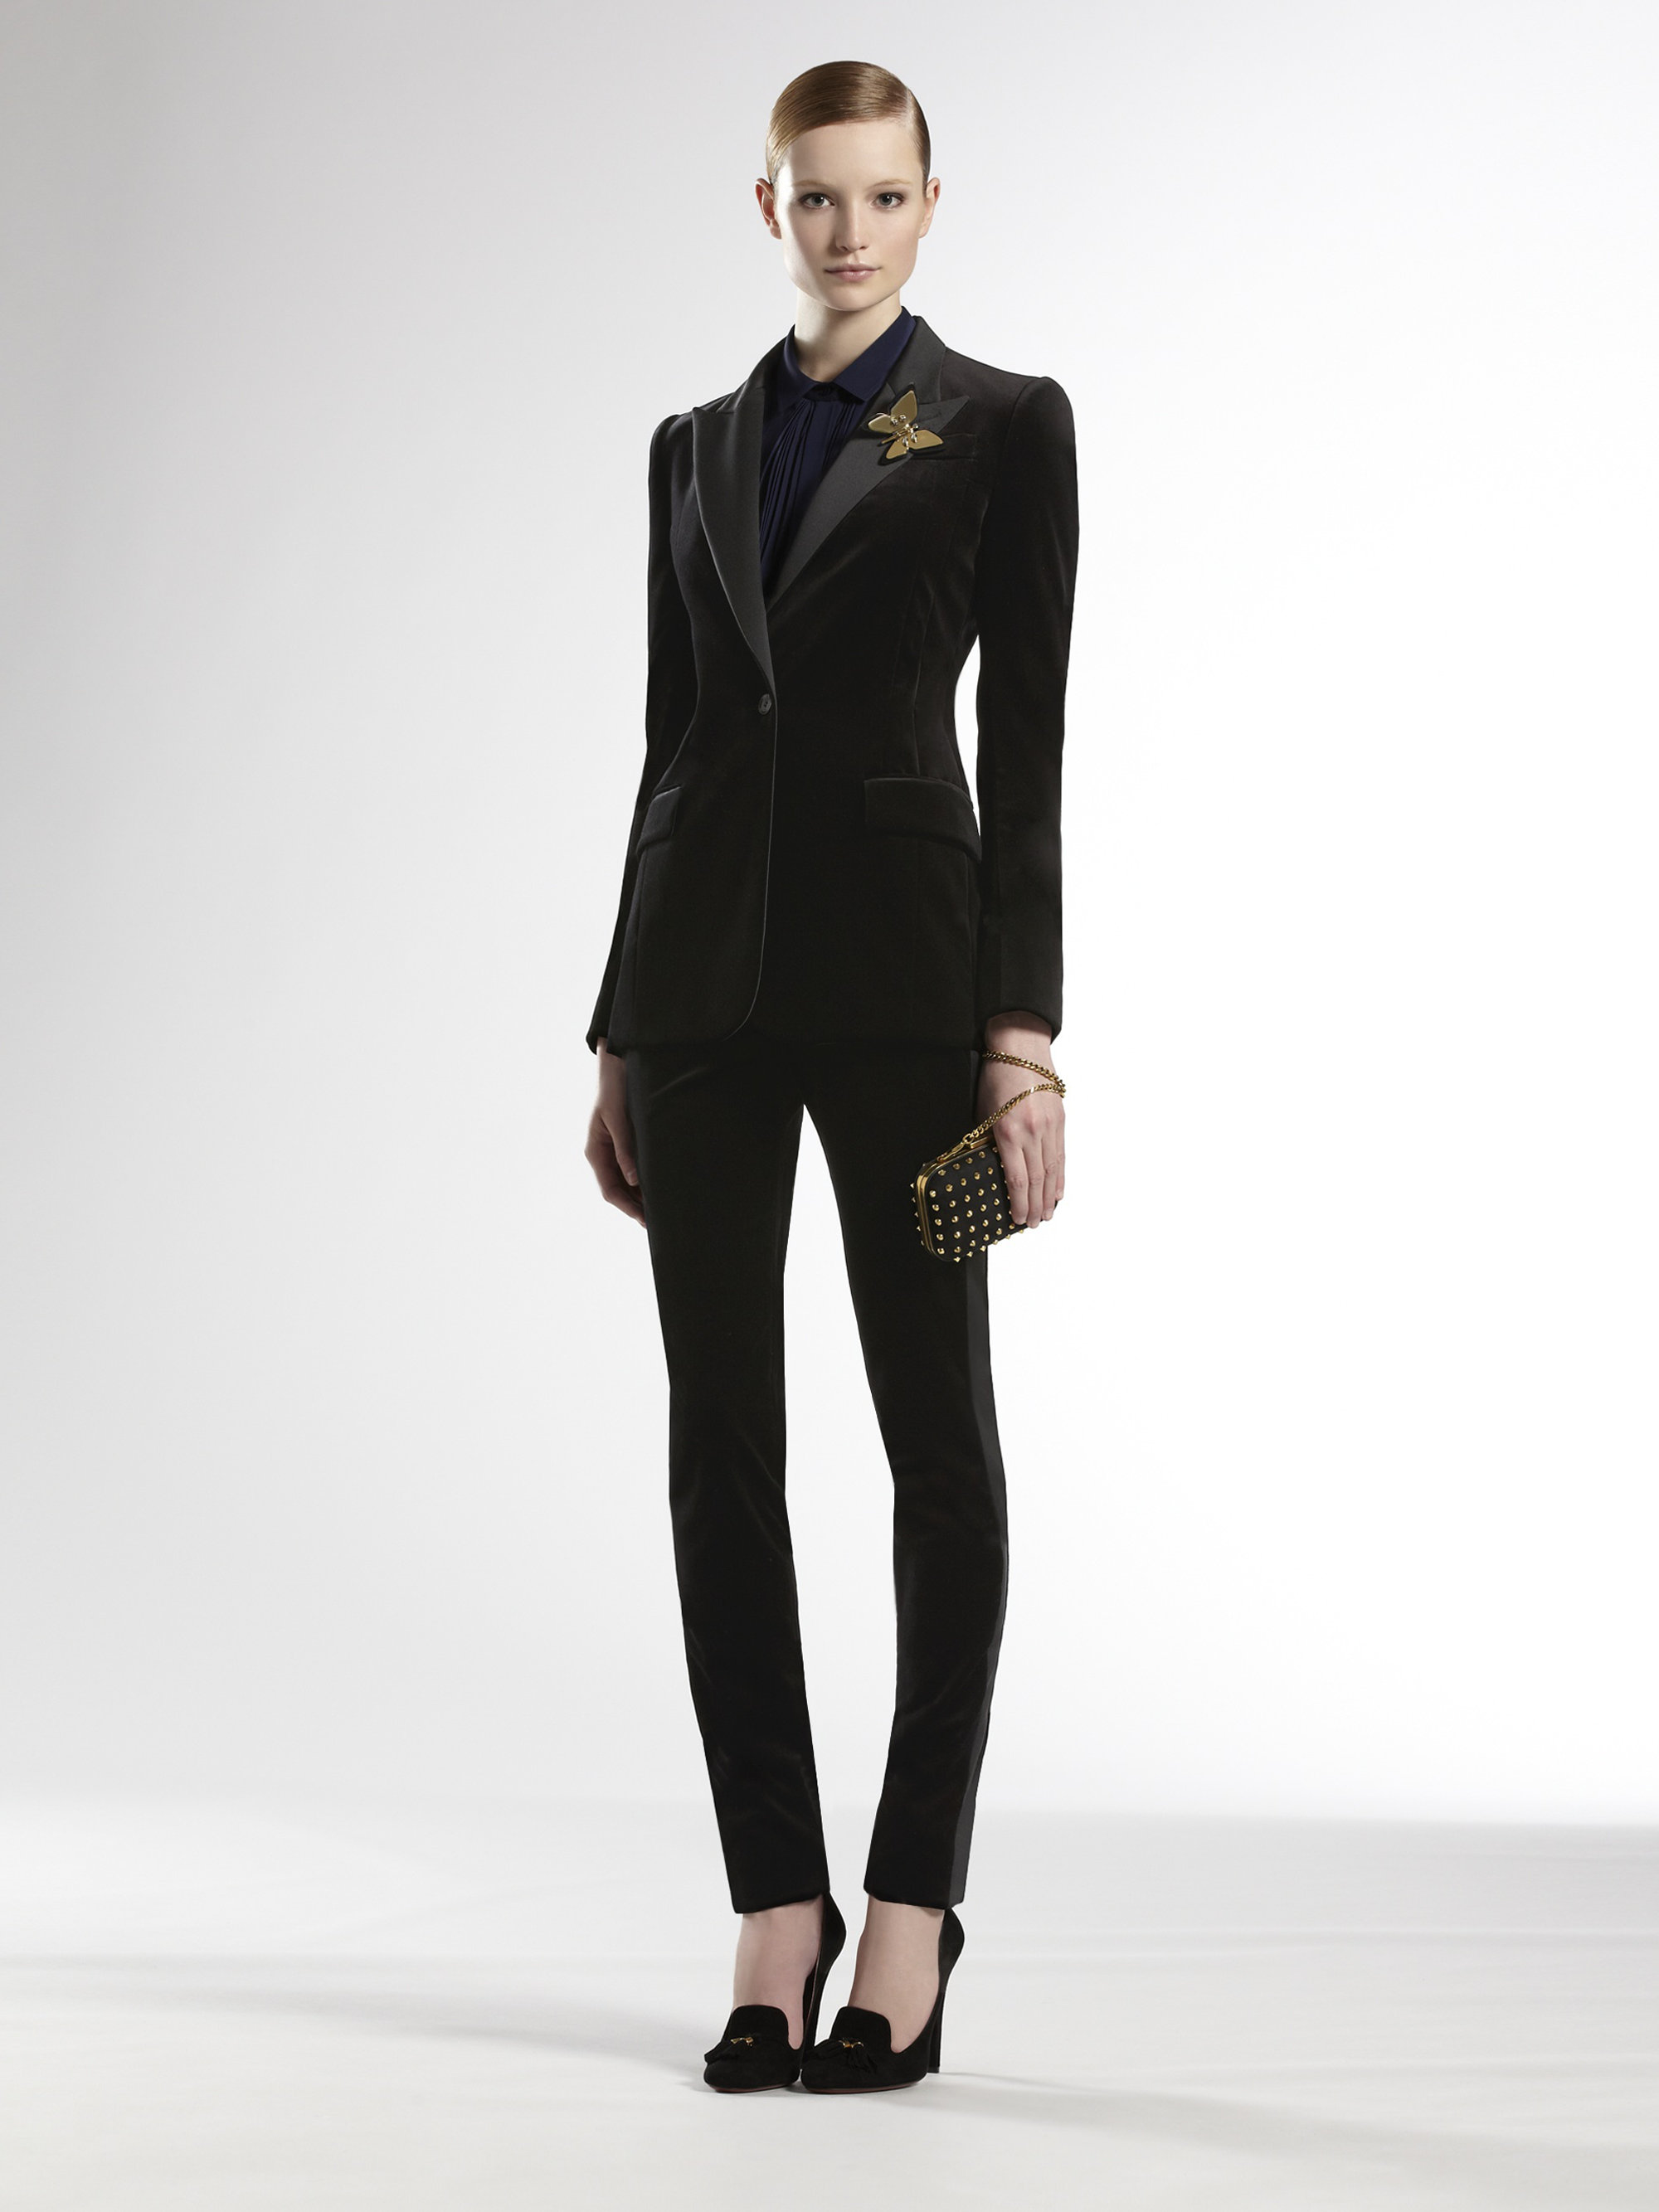 nordstrom suit women photo - 1